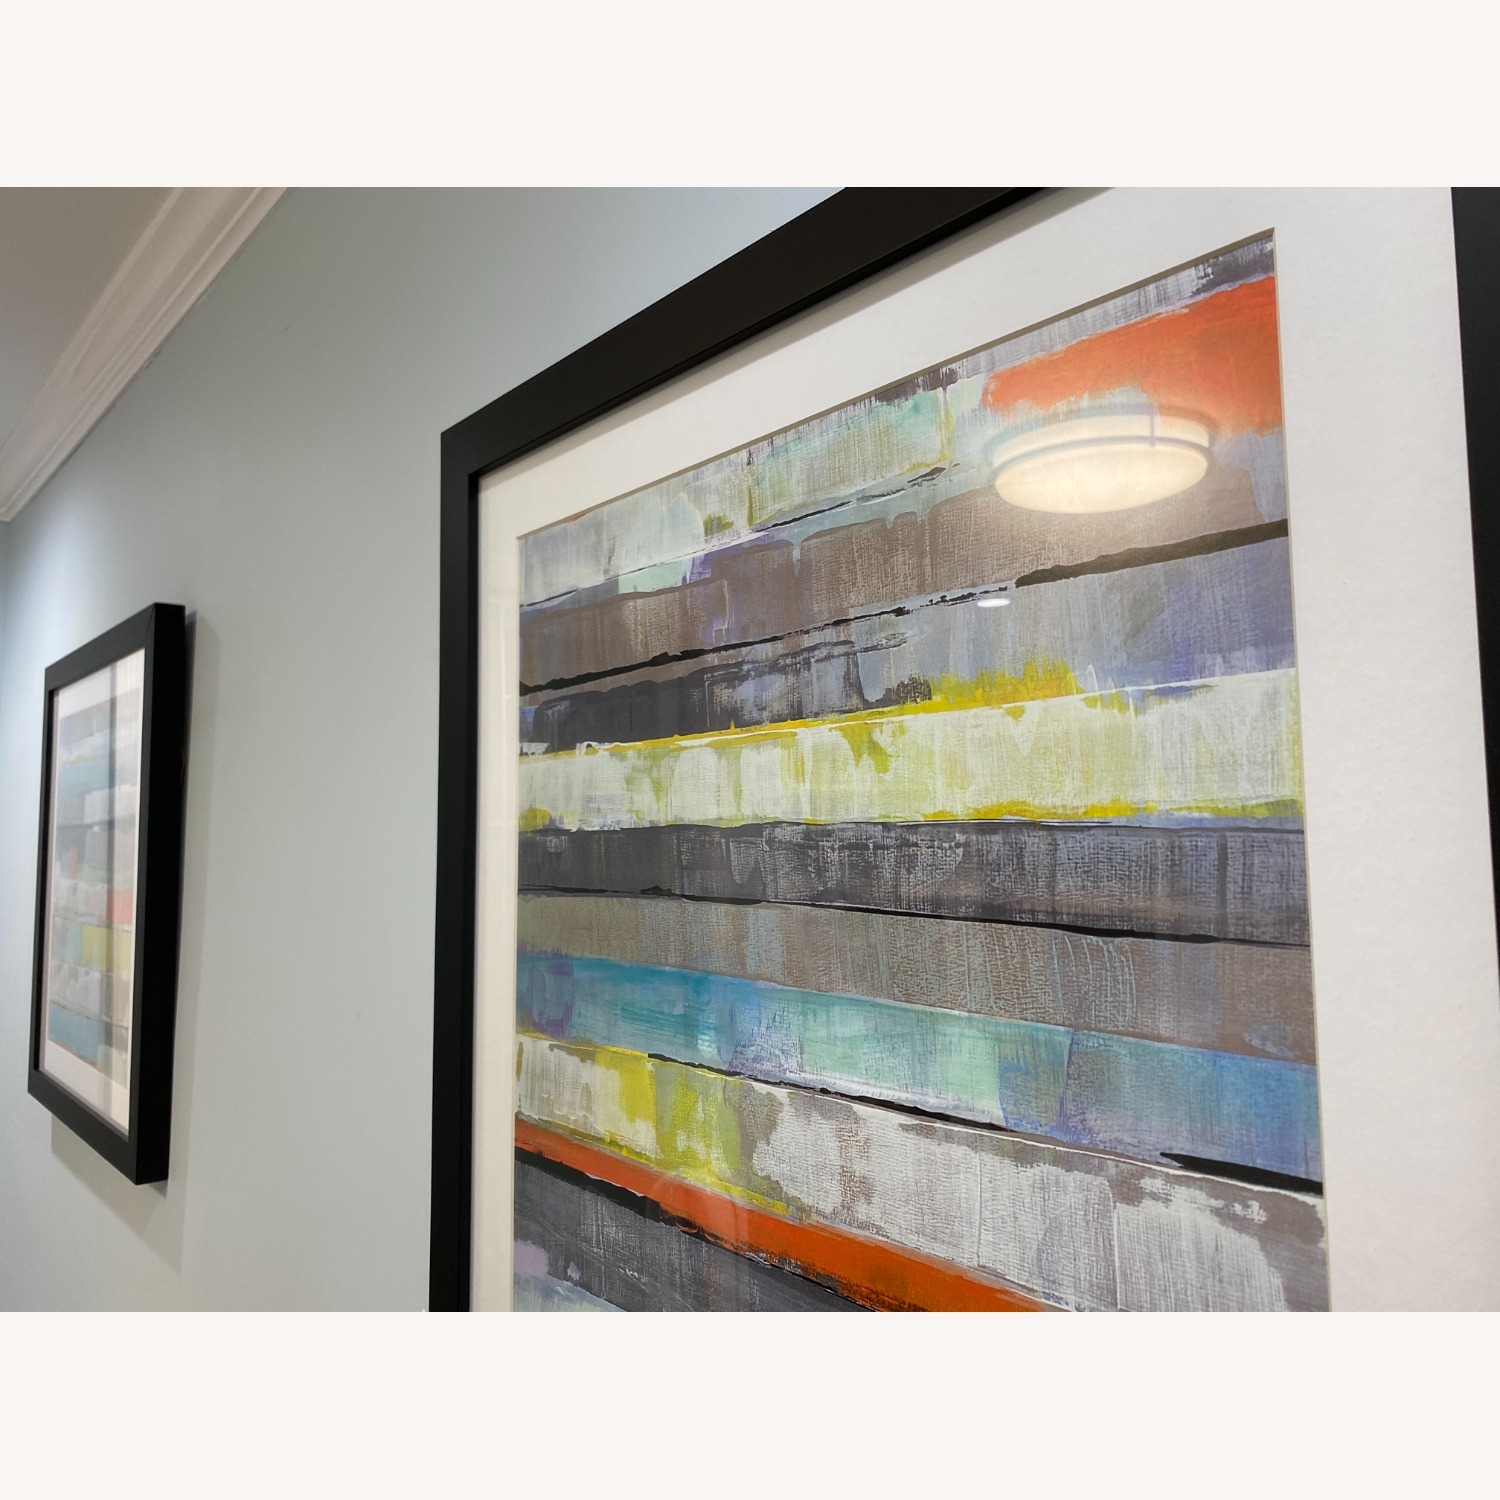 Abstract Z-Gallerie Wall Art: Metro 1 & 2 - image-8